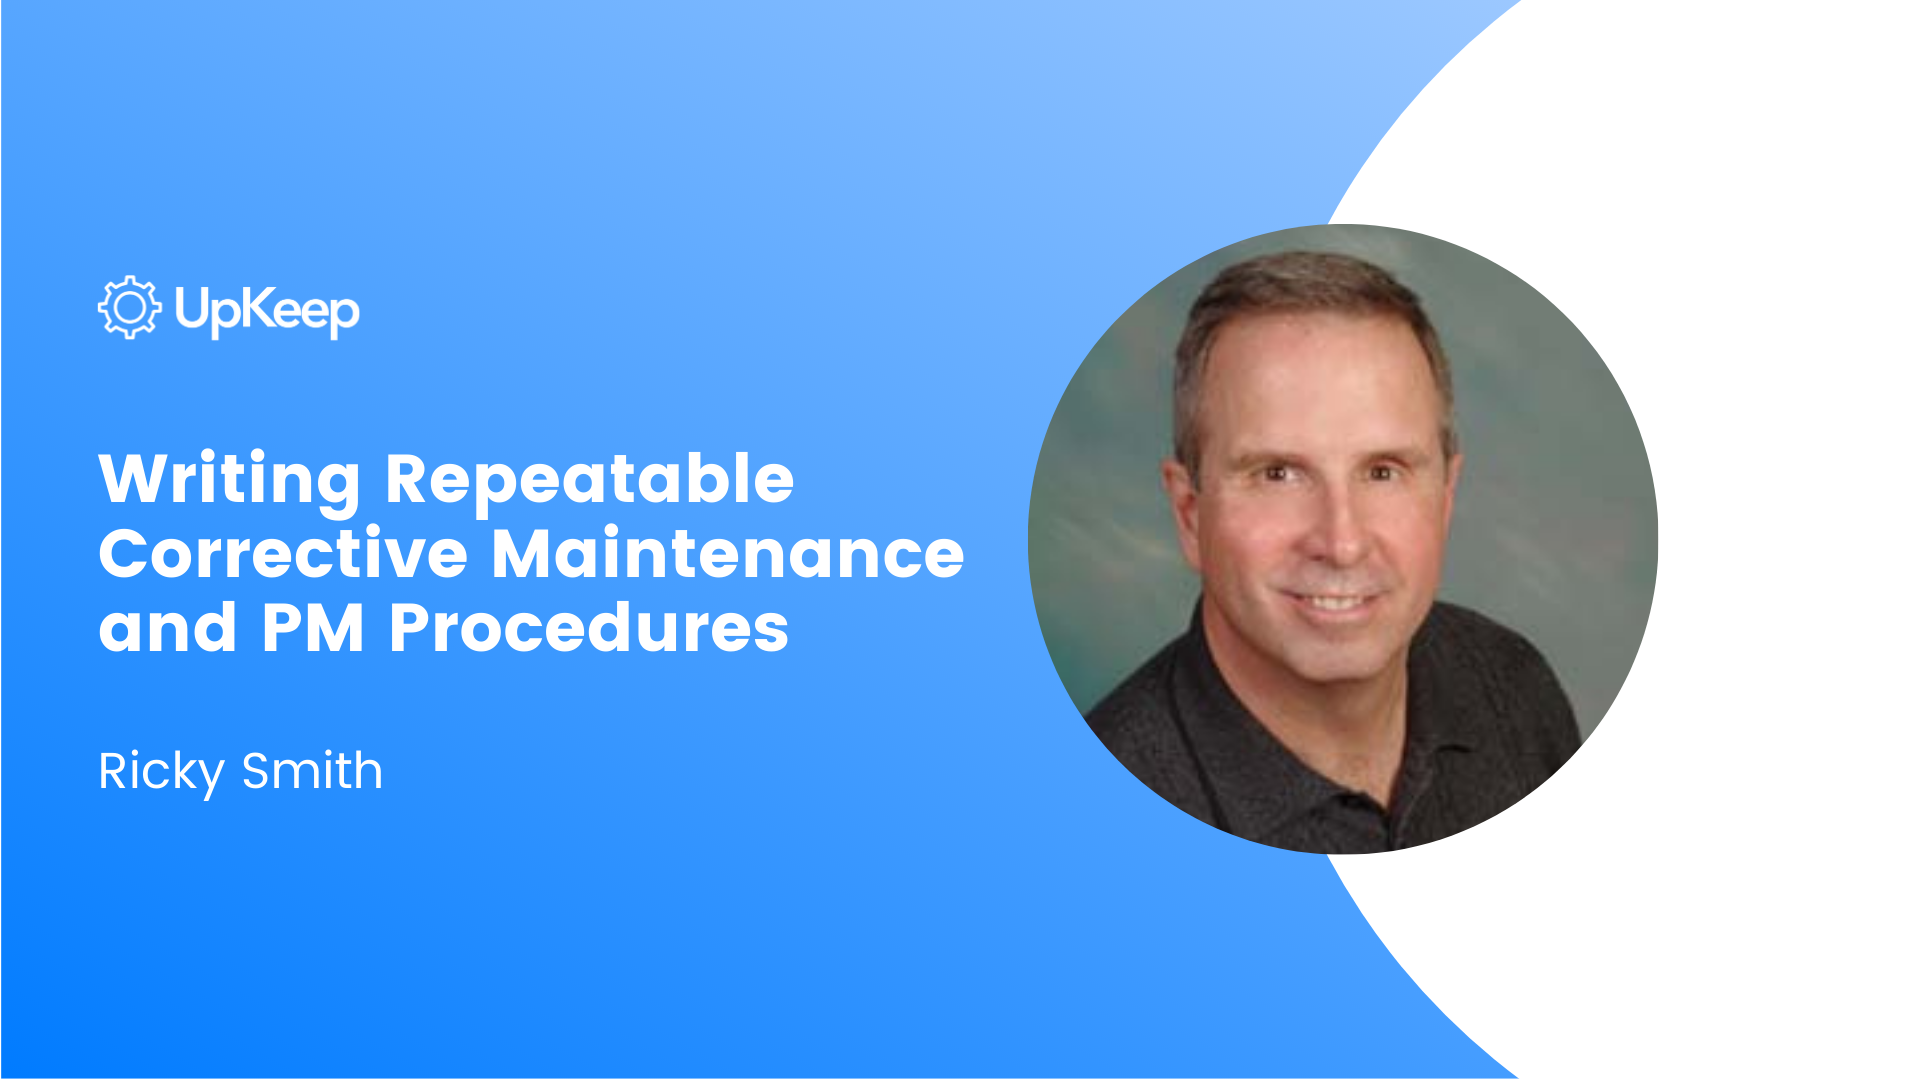 Writing Repeatable Corrective Maintenance and PM Procedures